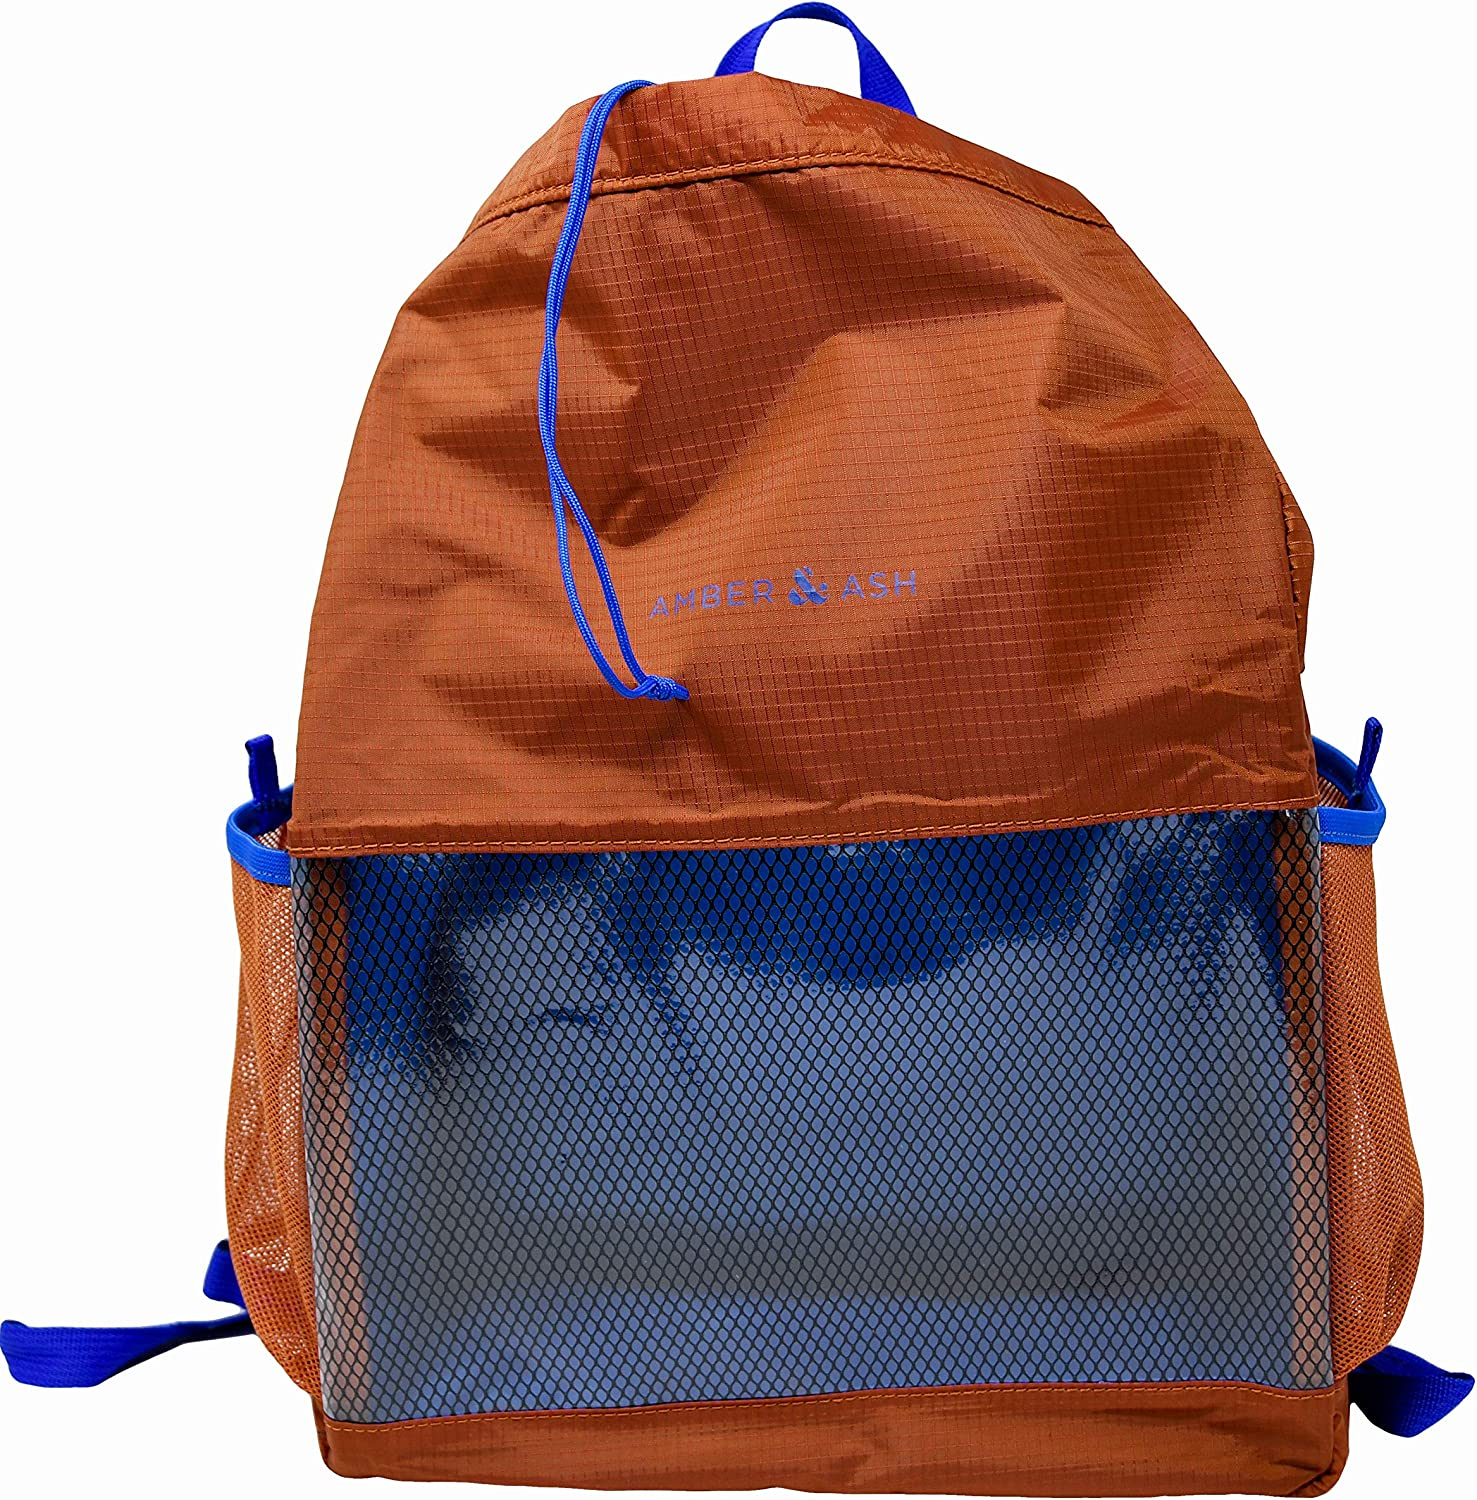 Amber & Ash Drawstring Backpack - Foldable, Water-Resistant, Durable